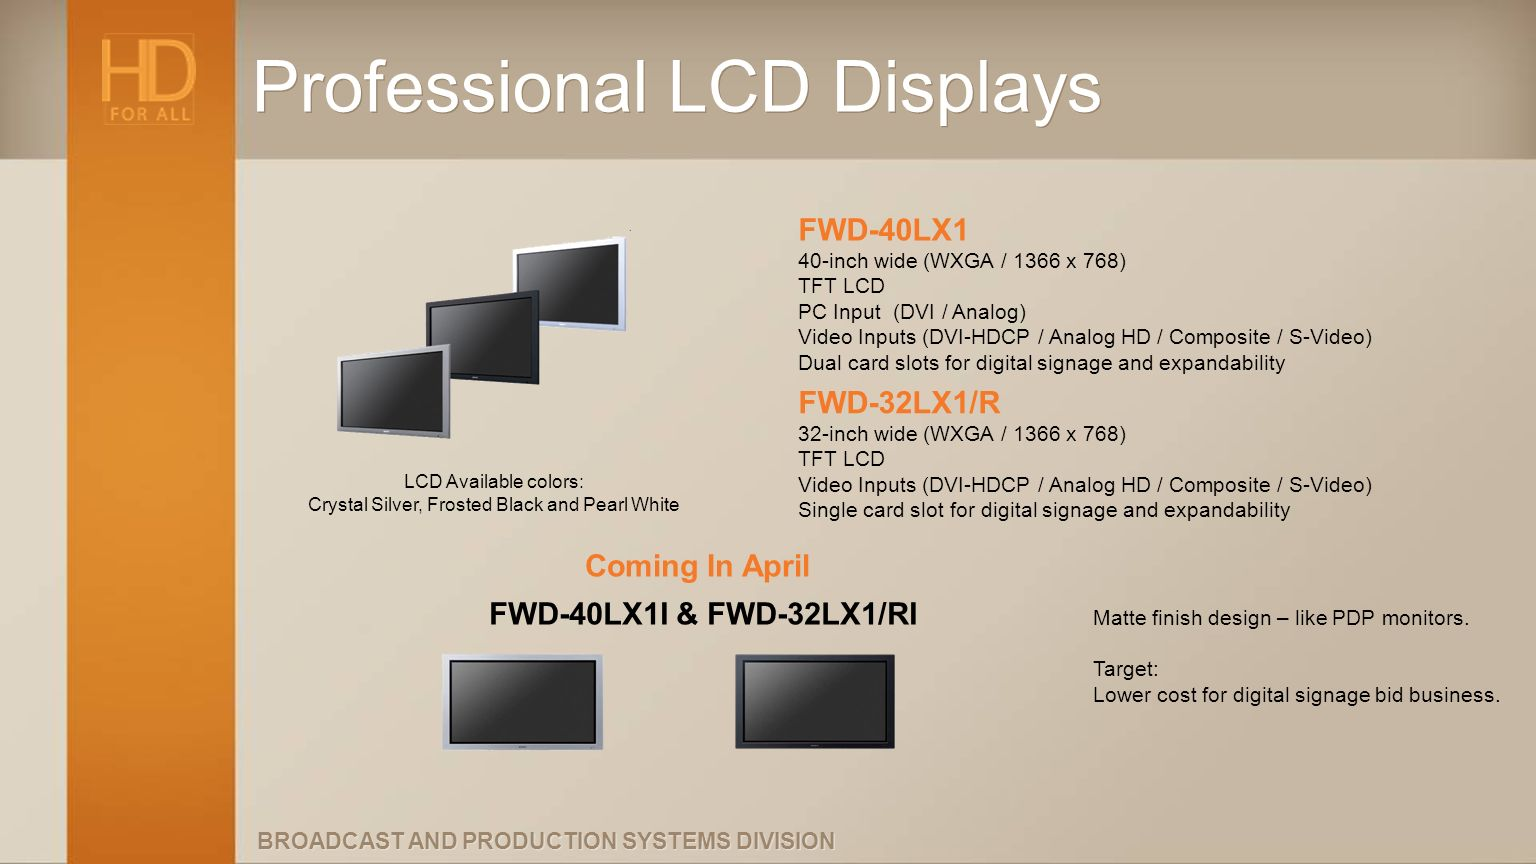 Professional LCD Displays